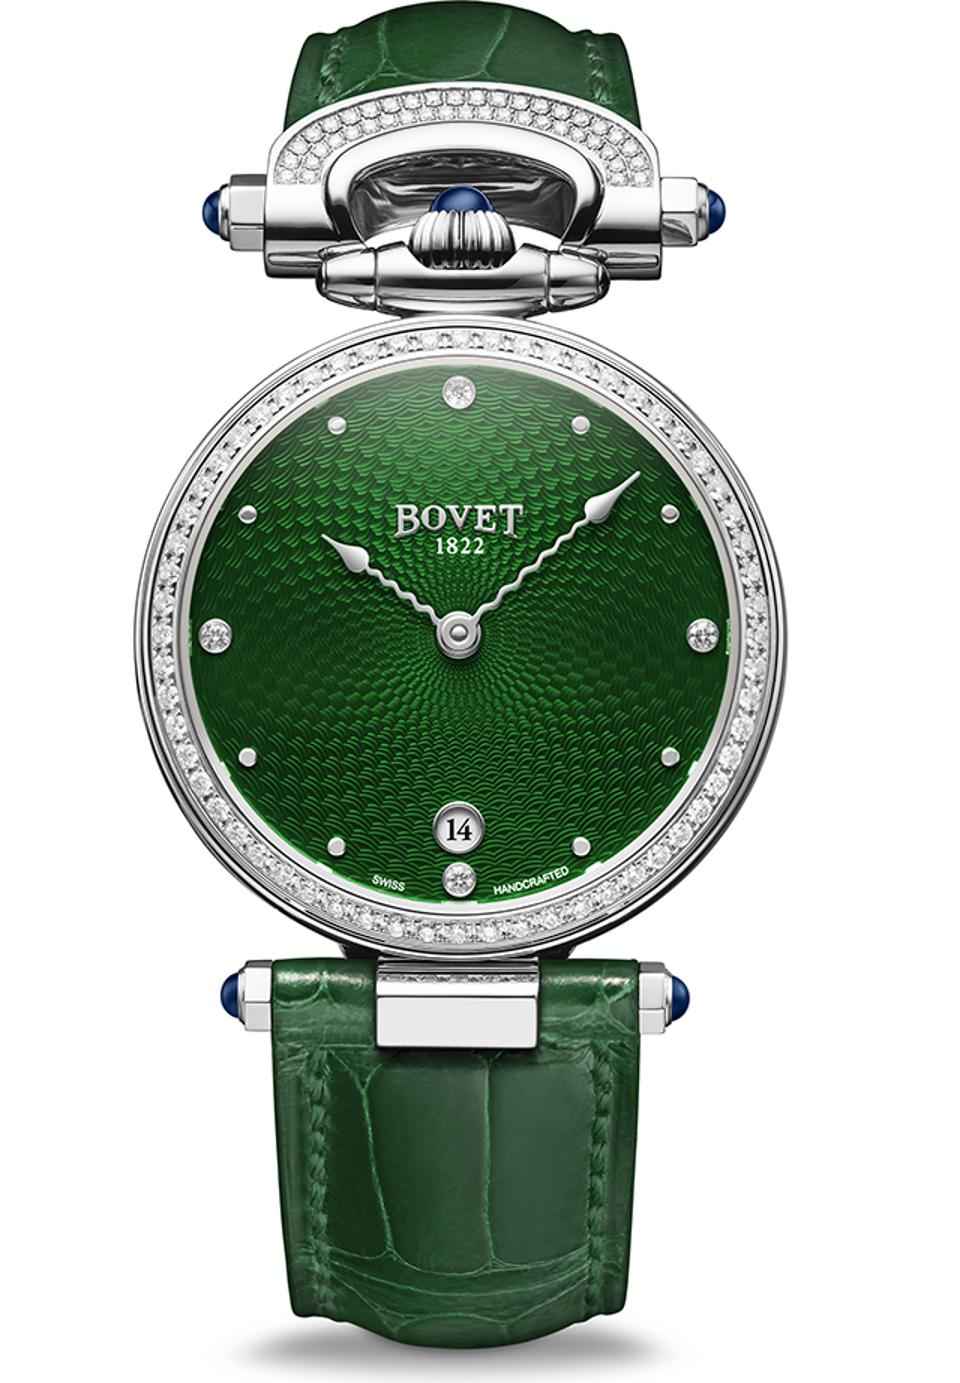 The Bovet 1822 Miss Audrey won the top Ladies' prize.